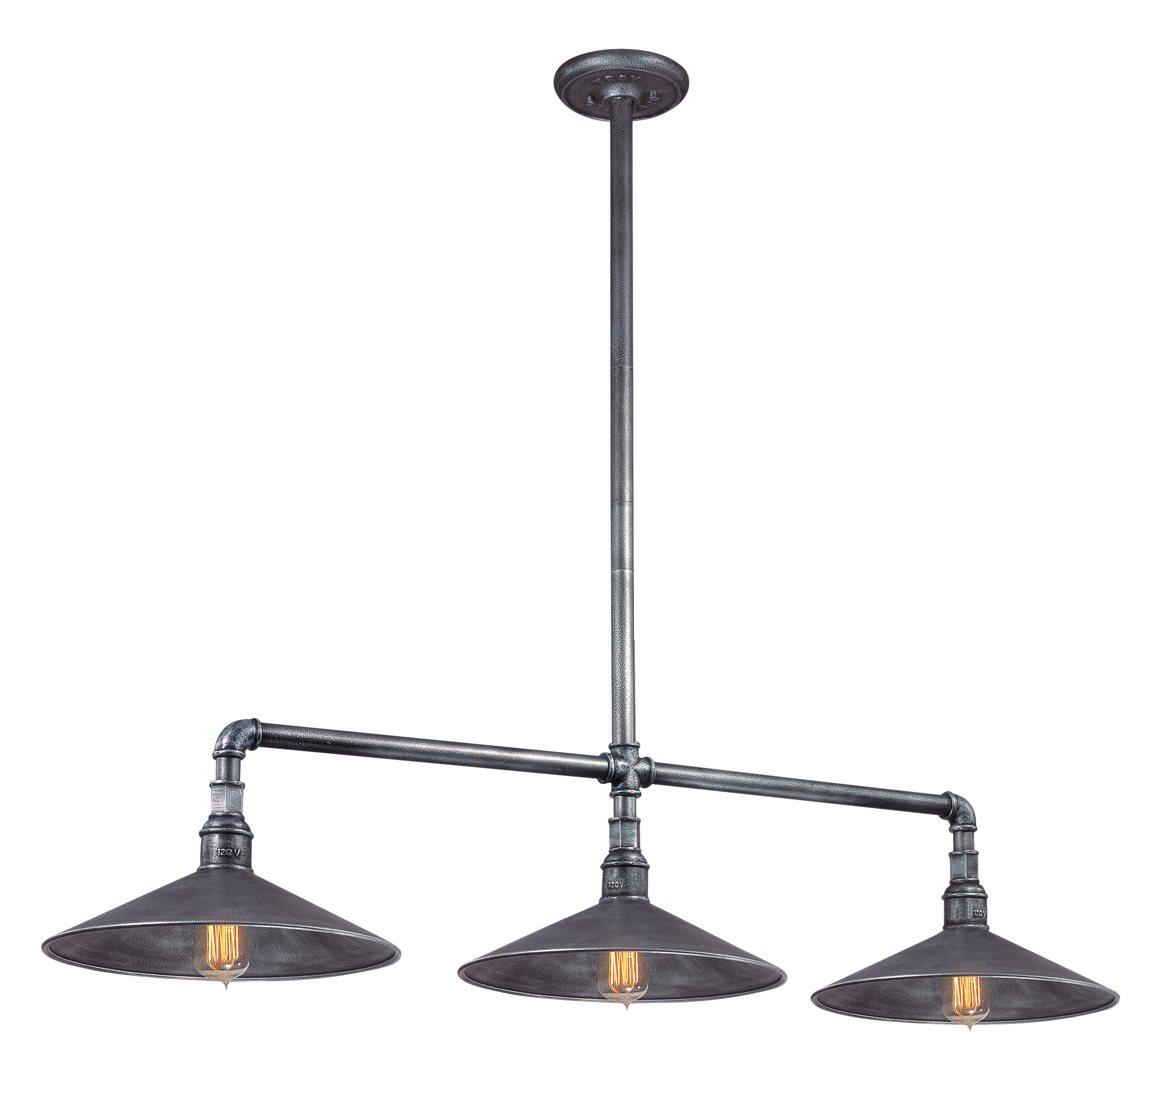 Troy Lighting F2776 Toledo Transitional Kitchen Island